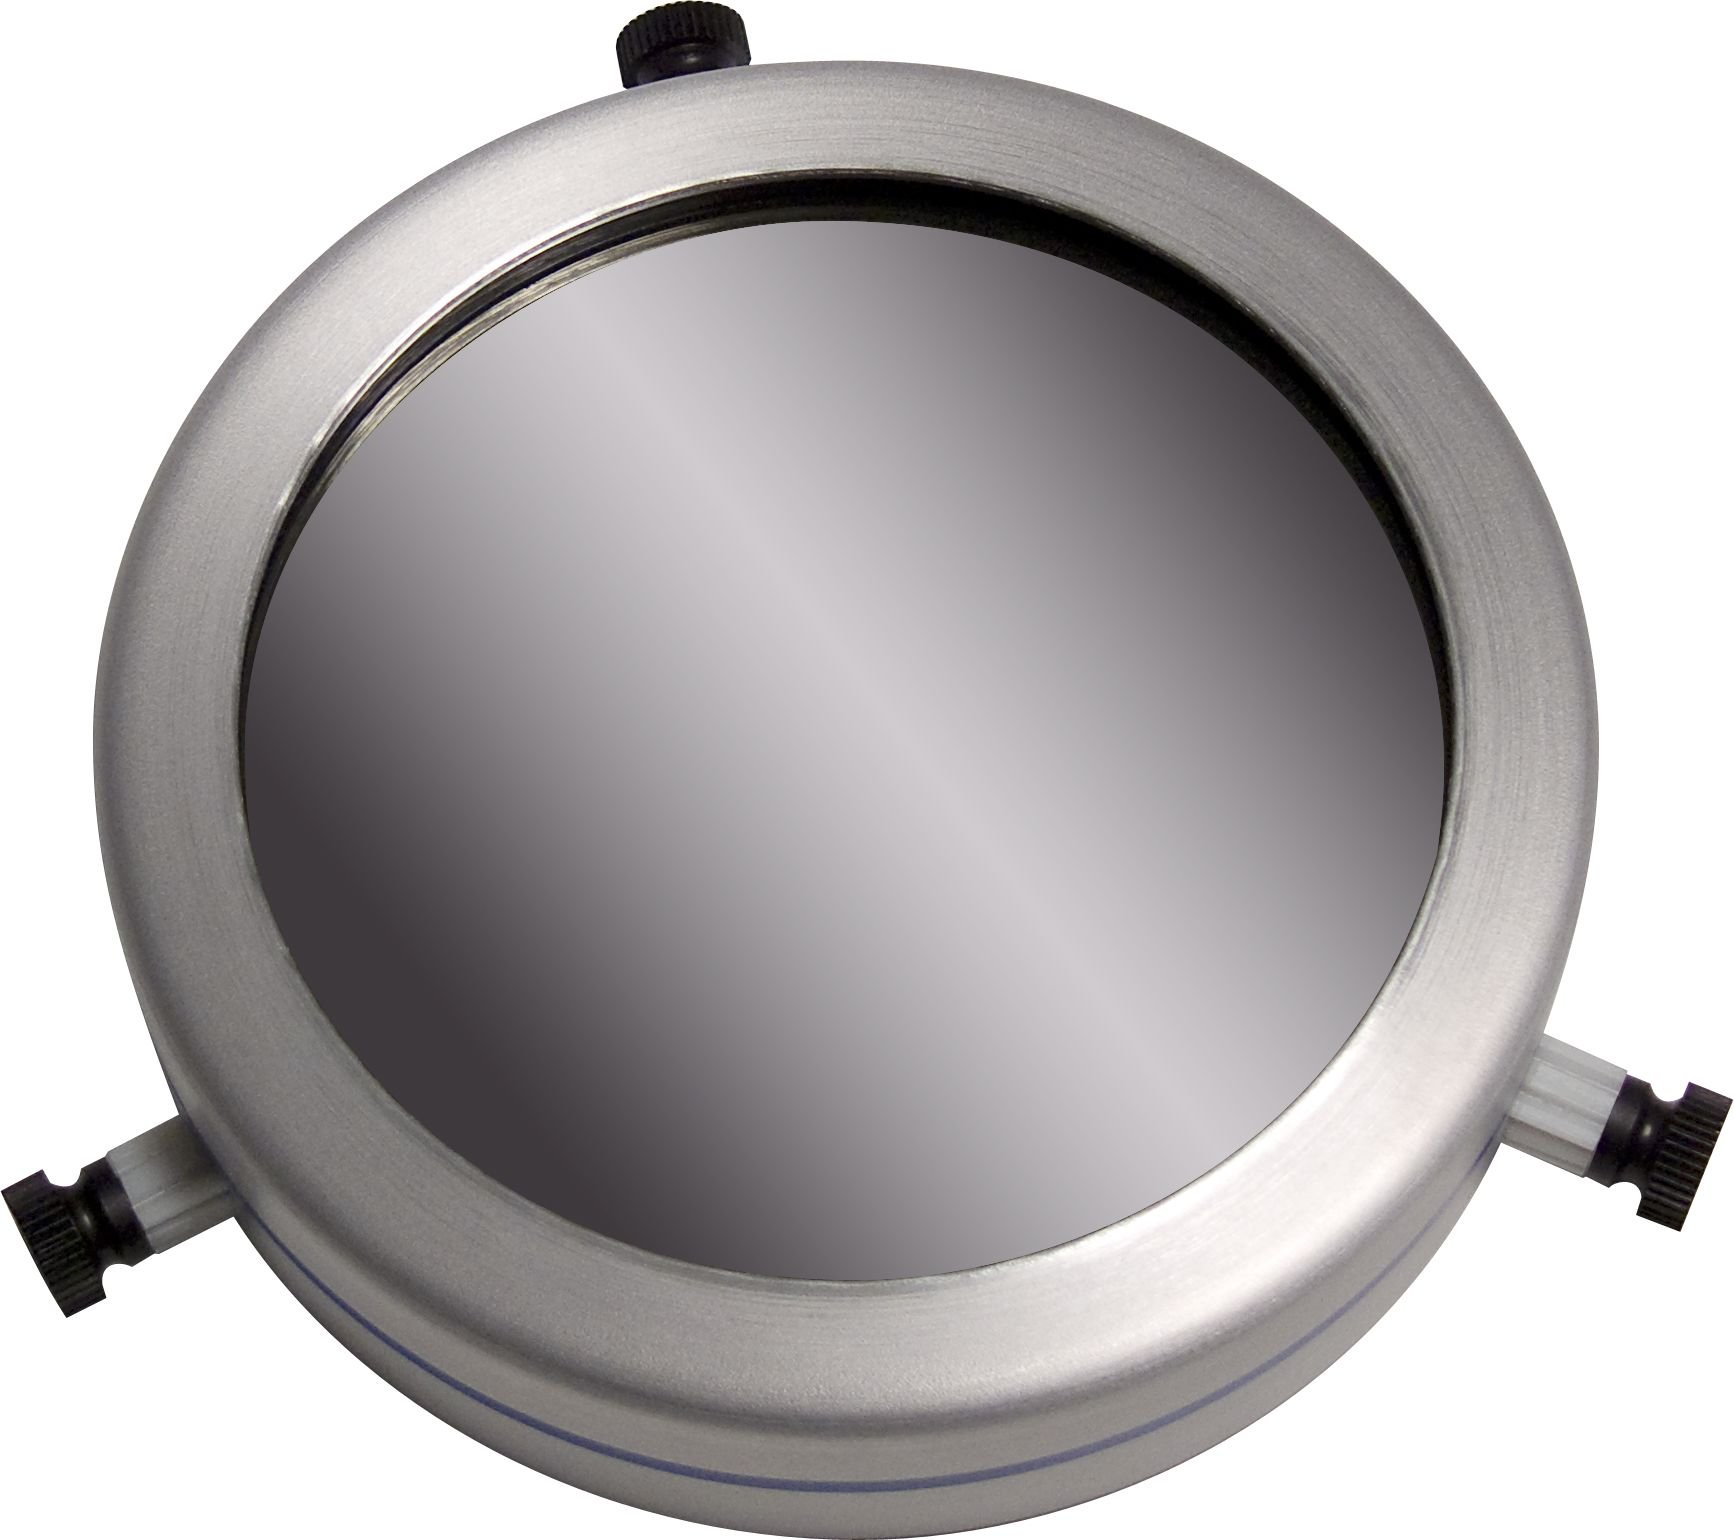 Orion 07733 4.10-Inch ID Full Aperture Glass Telescope Solar Filter (Silver) by Orion